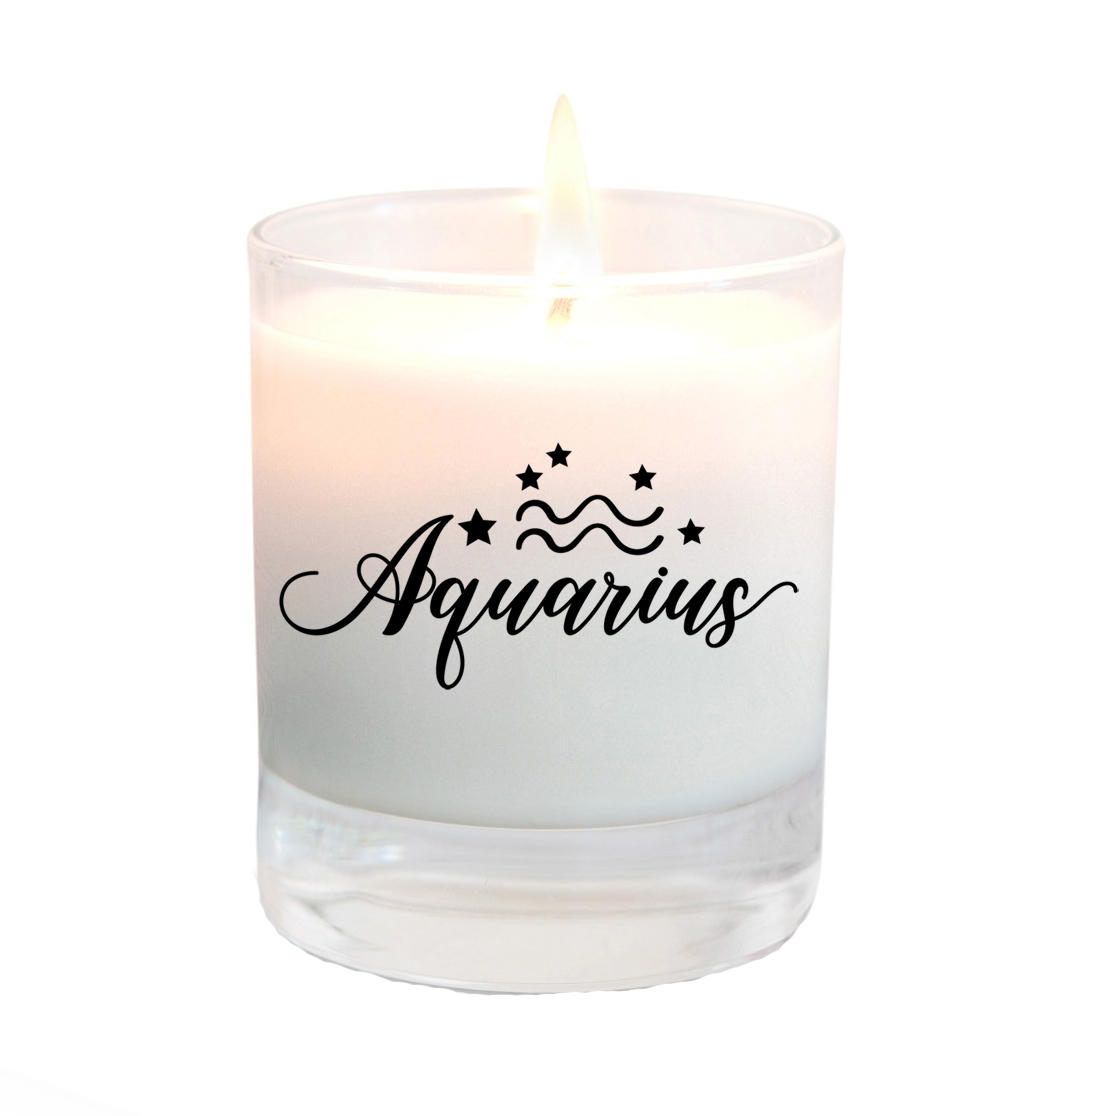 aquarius candle gift